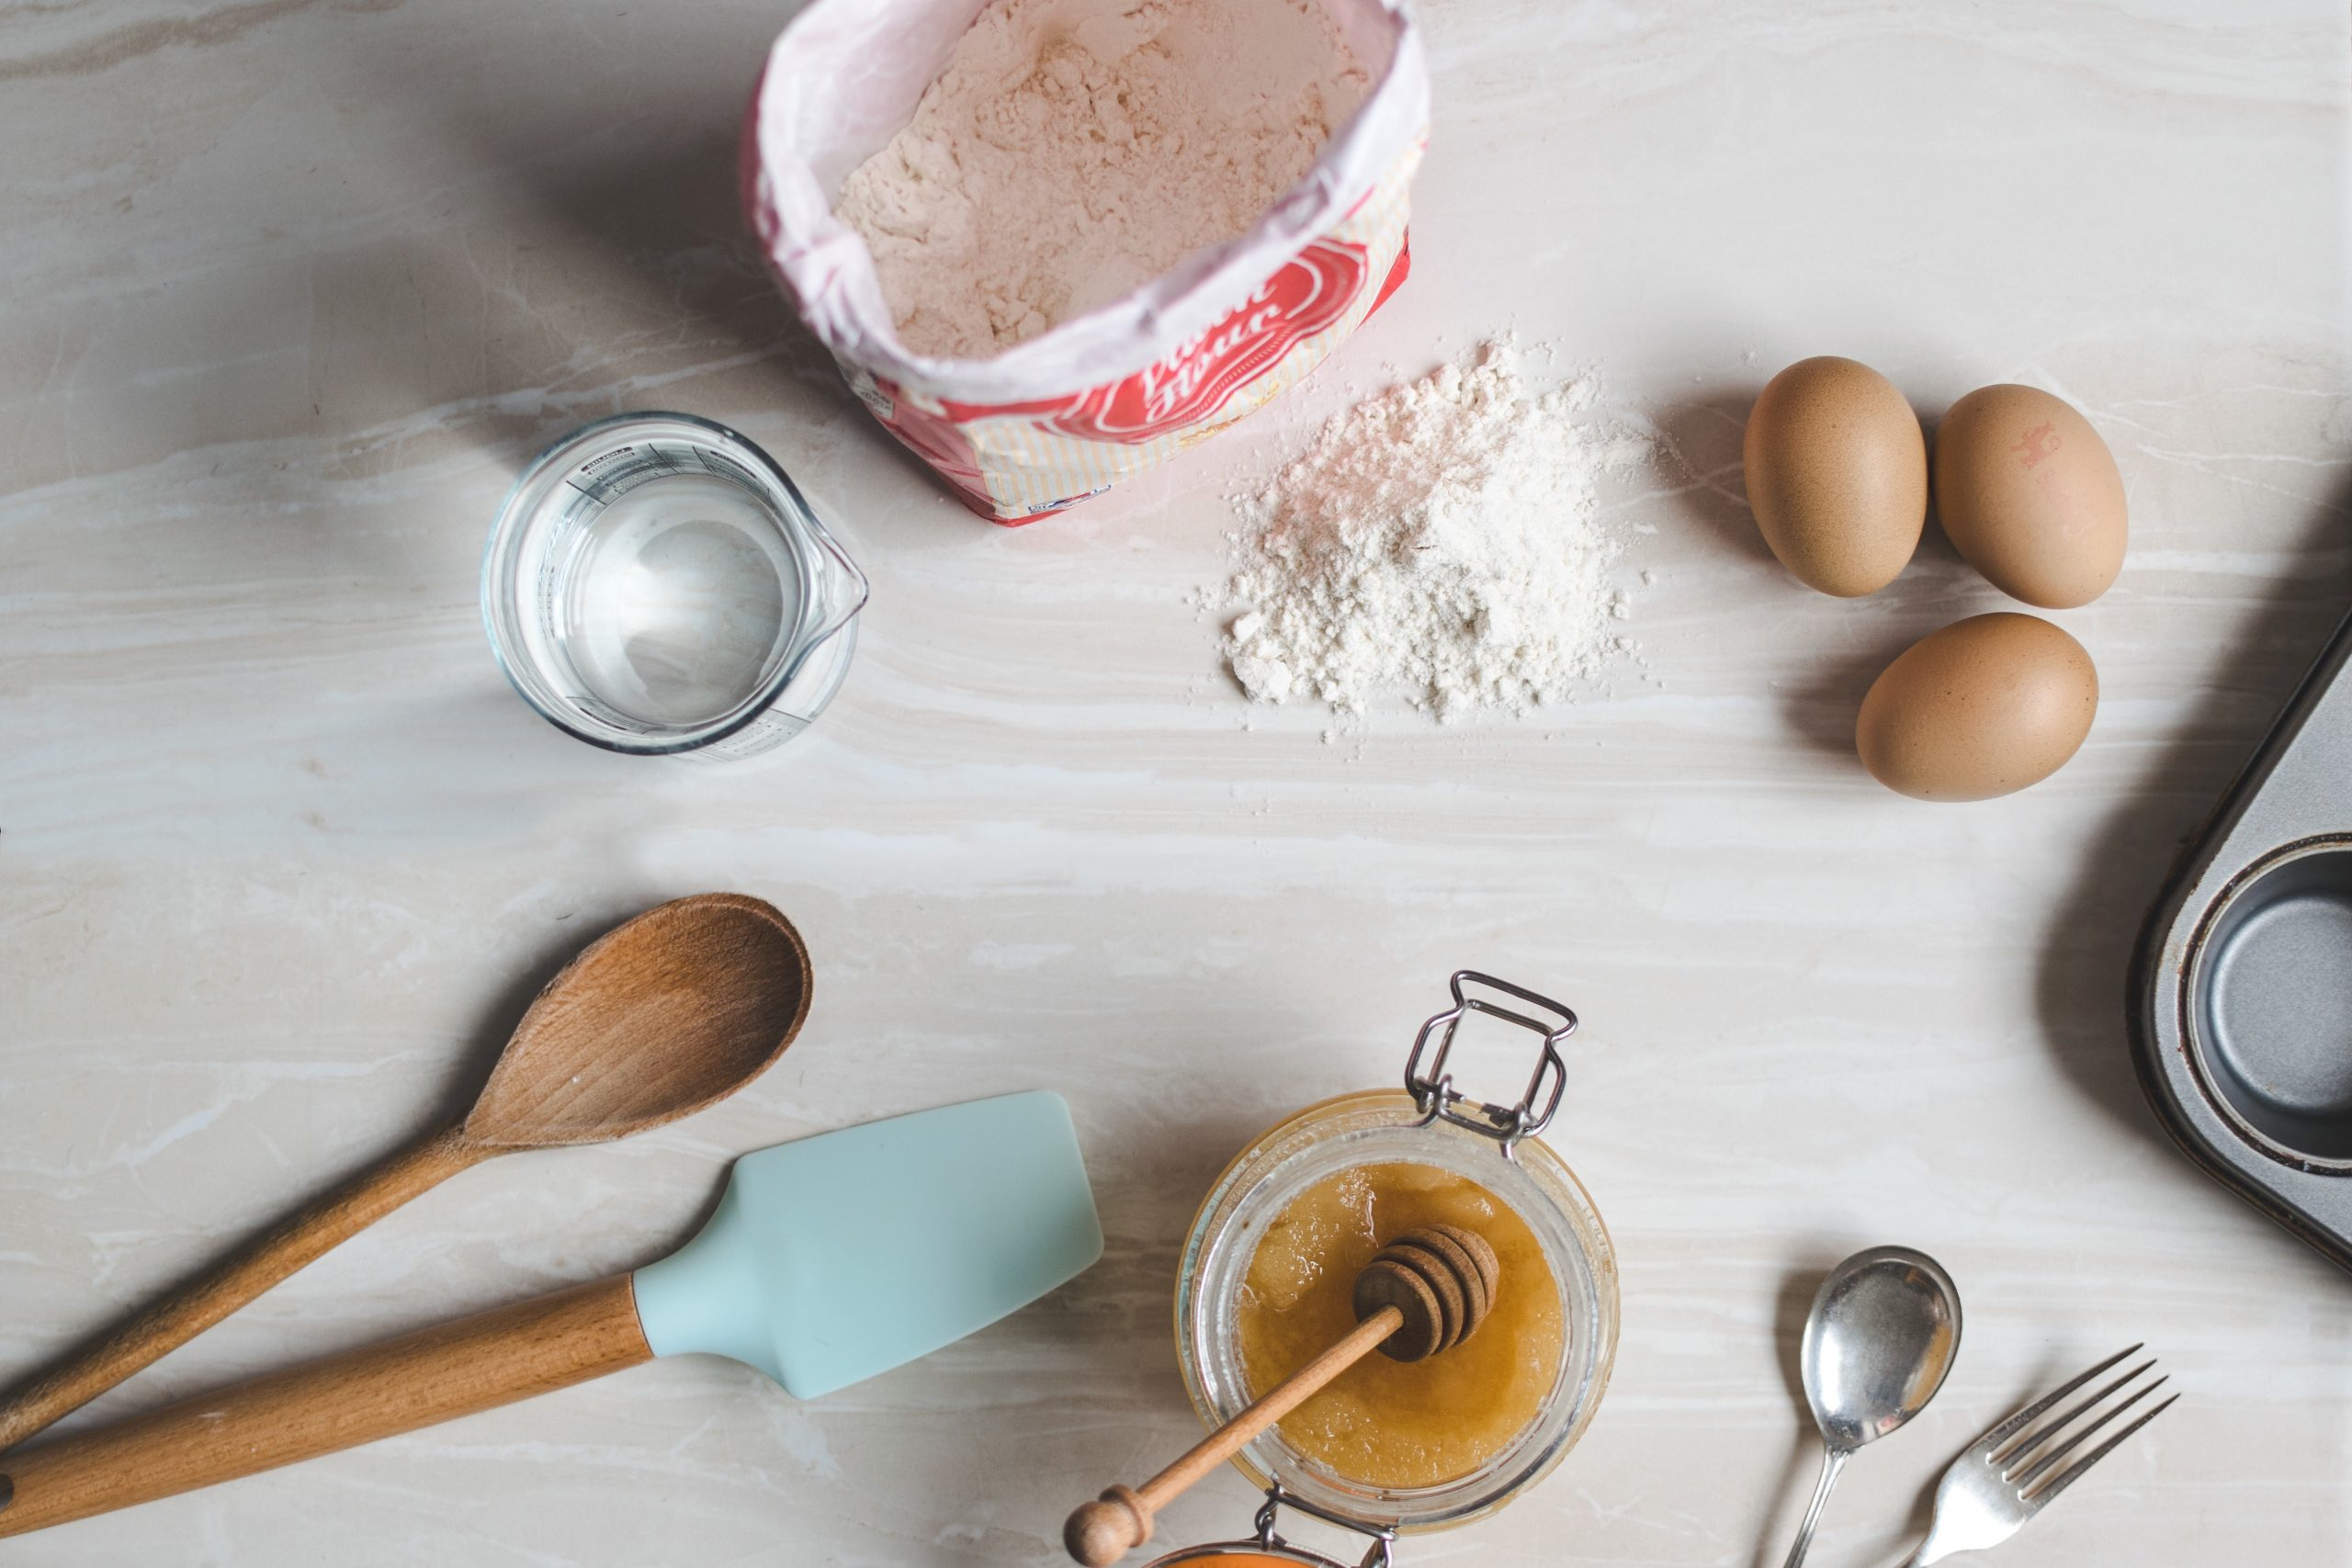 Picture of cooking ingredients on bench, including flour alternatives